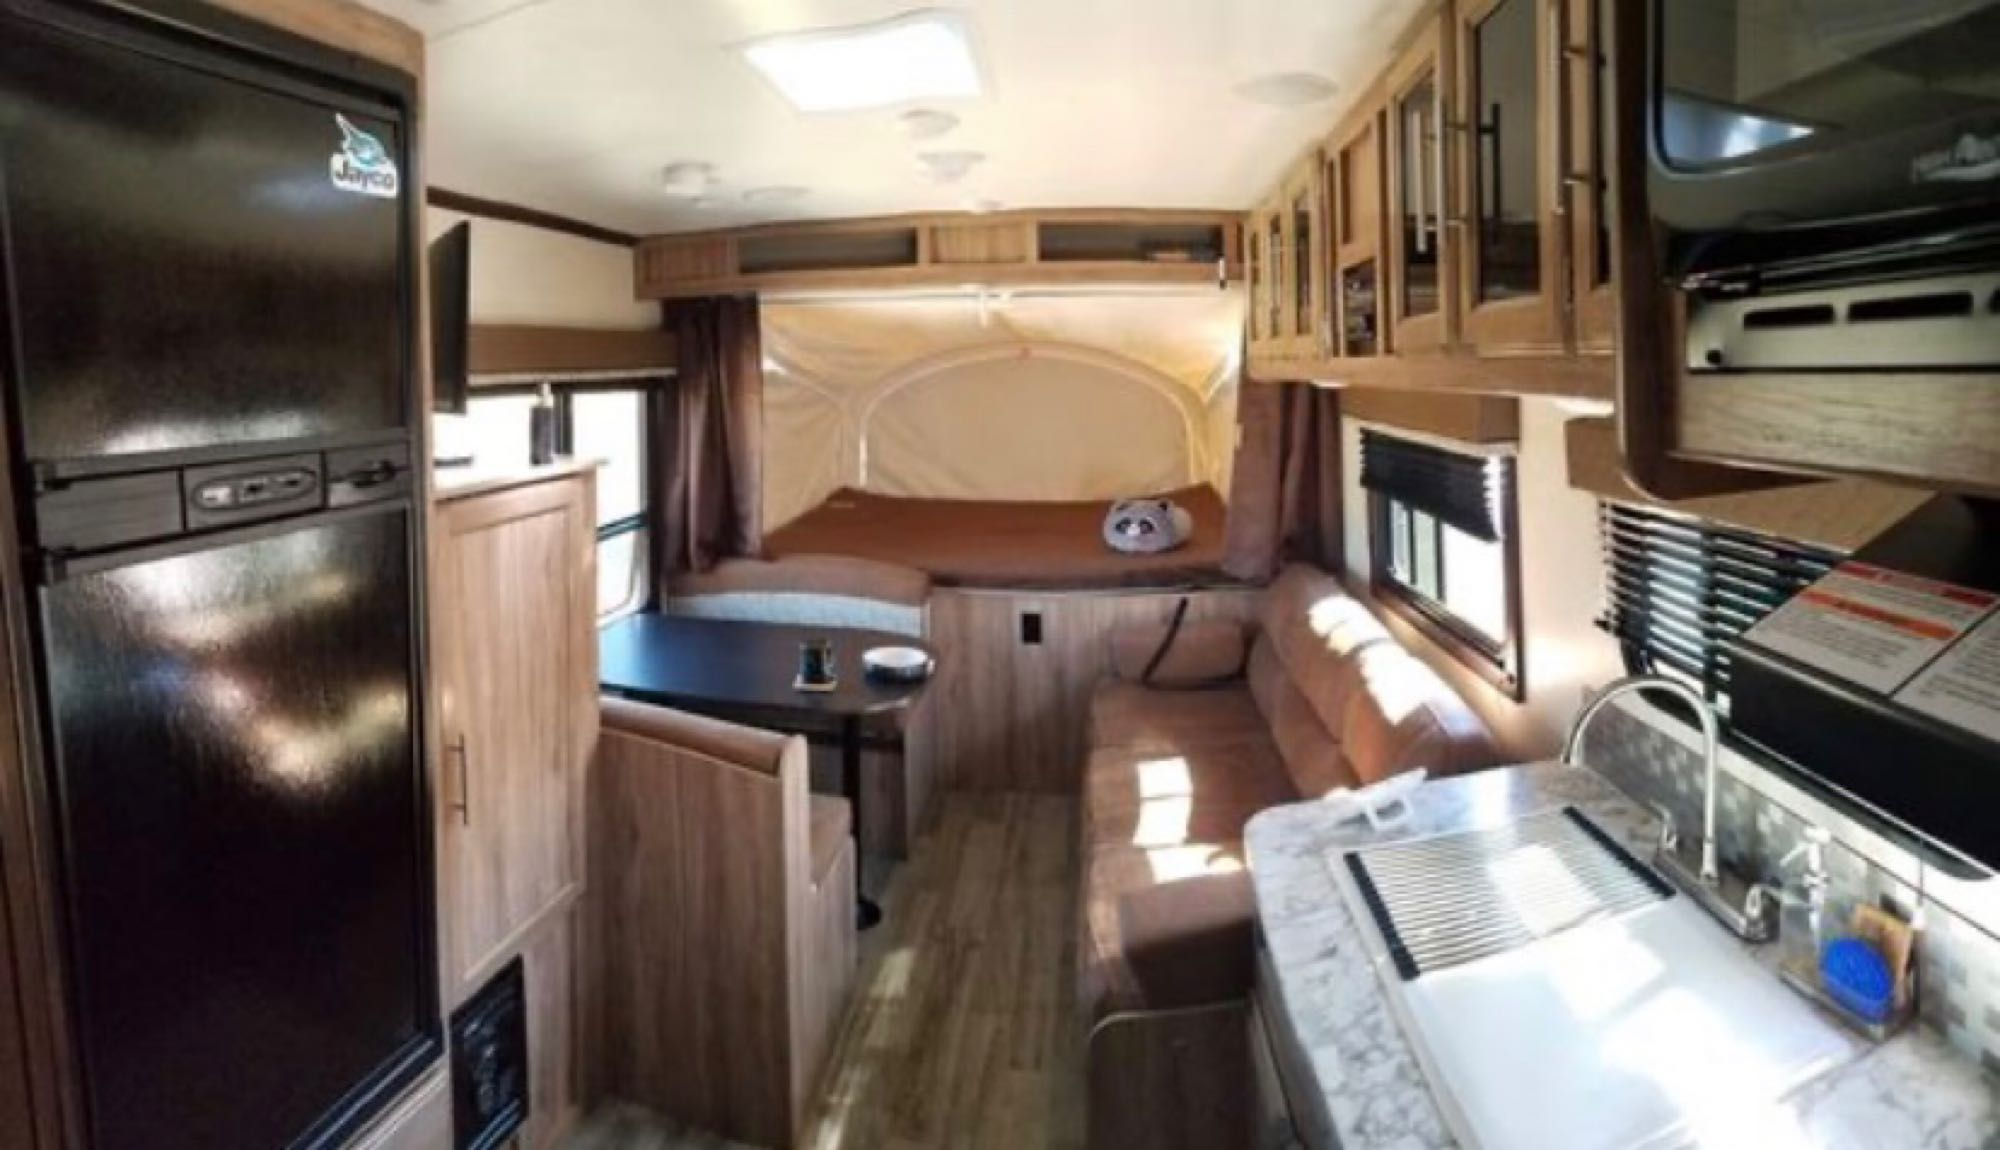 Full kitchen with oven, stove, microwave, refrigerator, and freezer. Jayco Jay Feather 2018